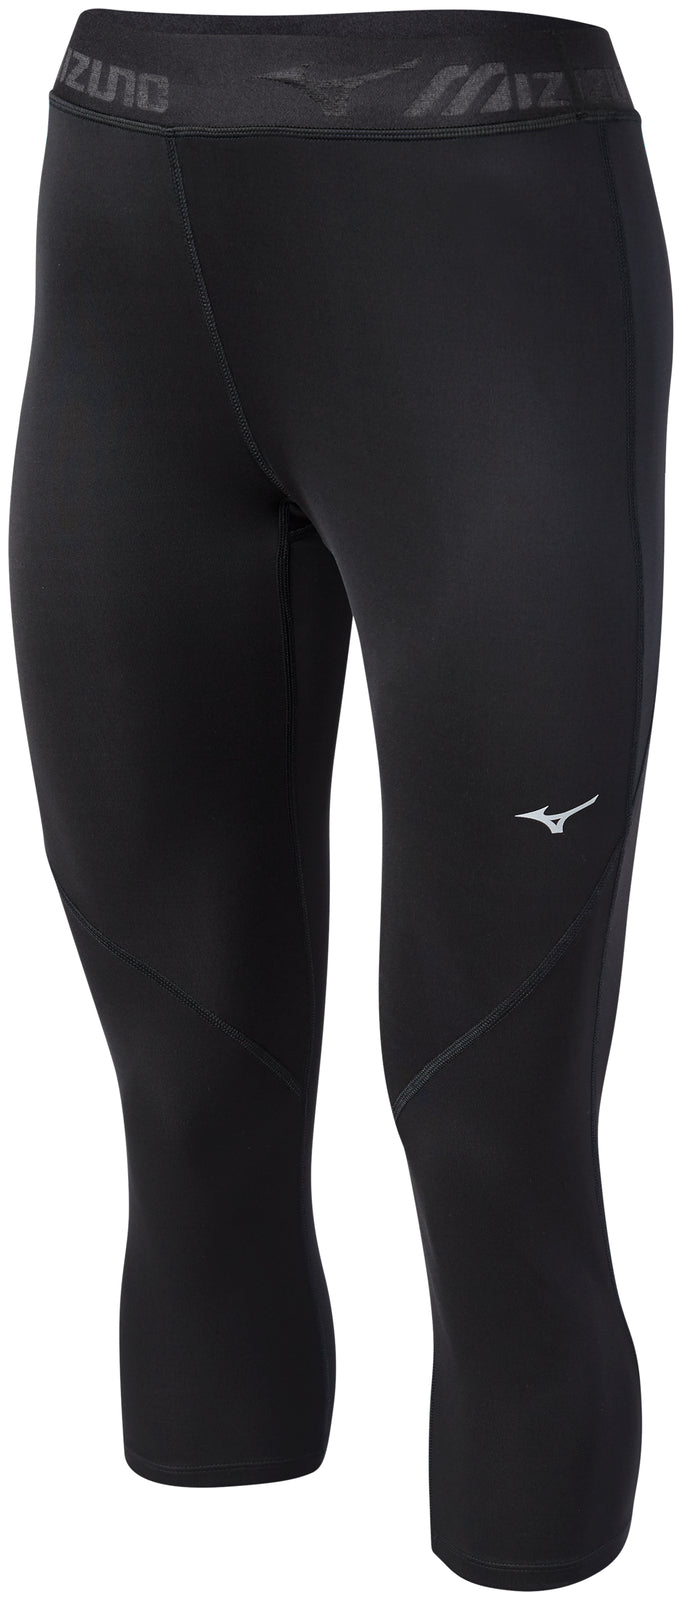 556994d094 Mizuno Women's Impulse Core 3/4 Tight - Black (421626.9090) – Marathon  Sports